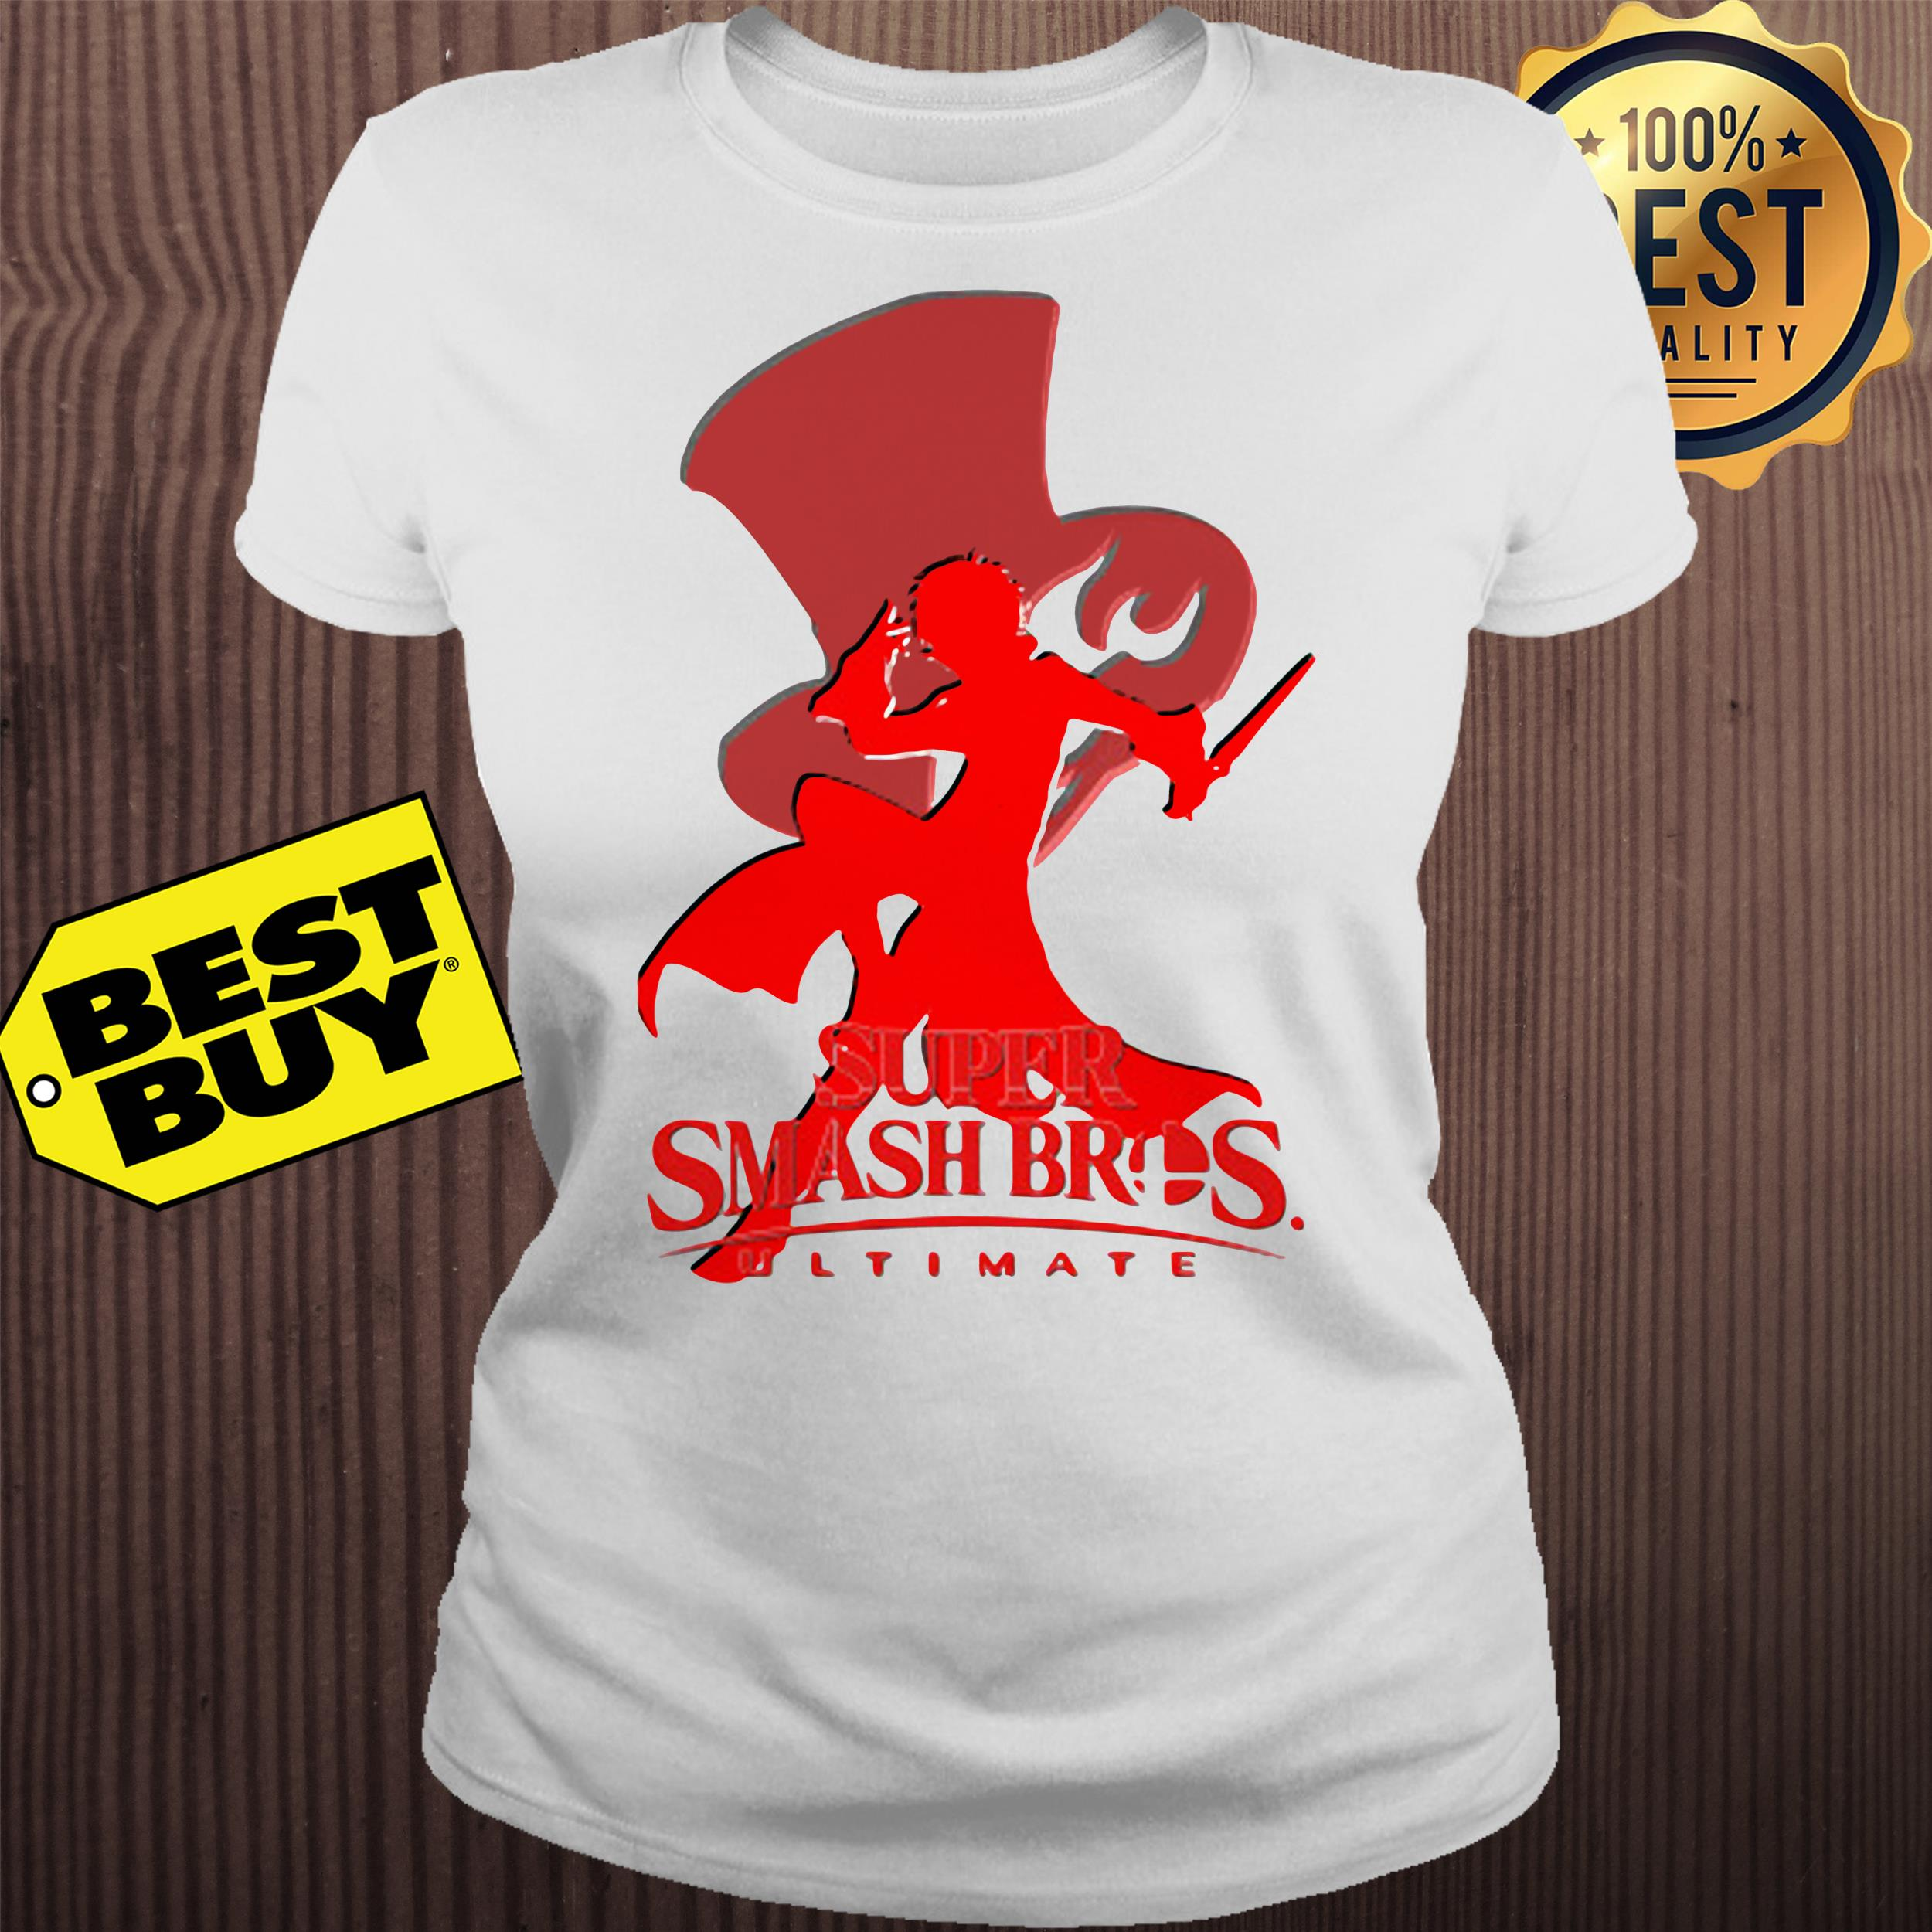 Joker Silhouette Crew Neck super smash bros ultimate ladies tee